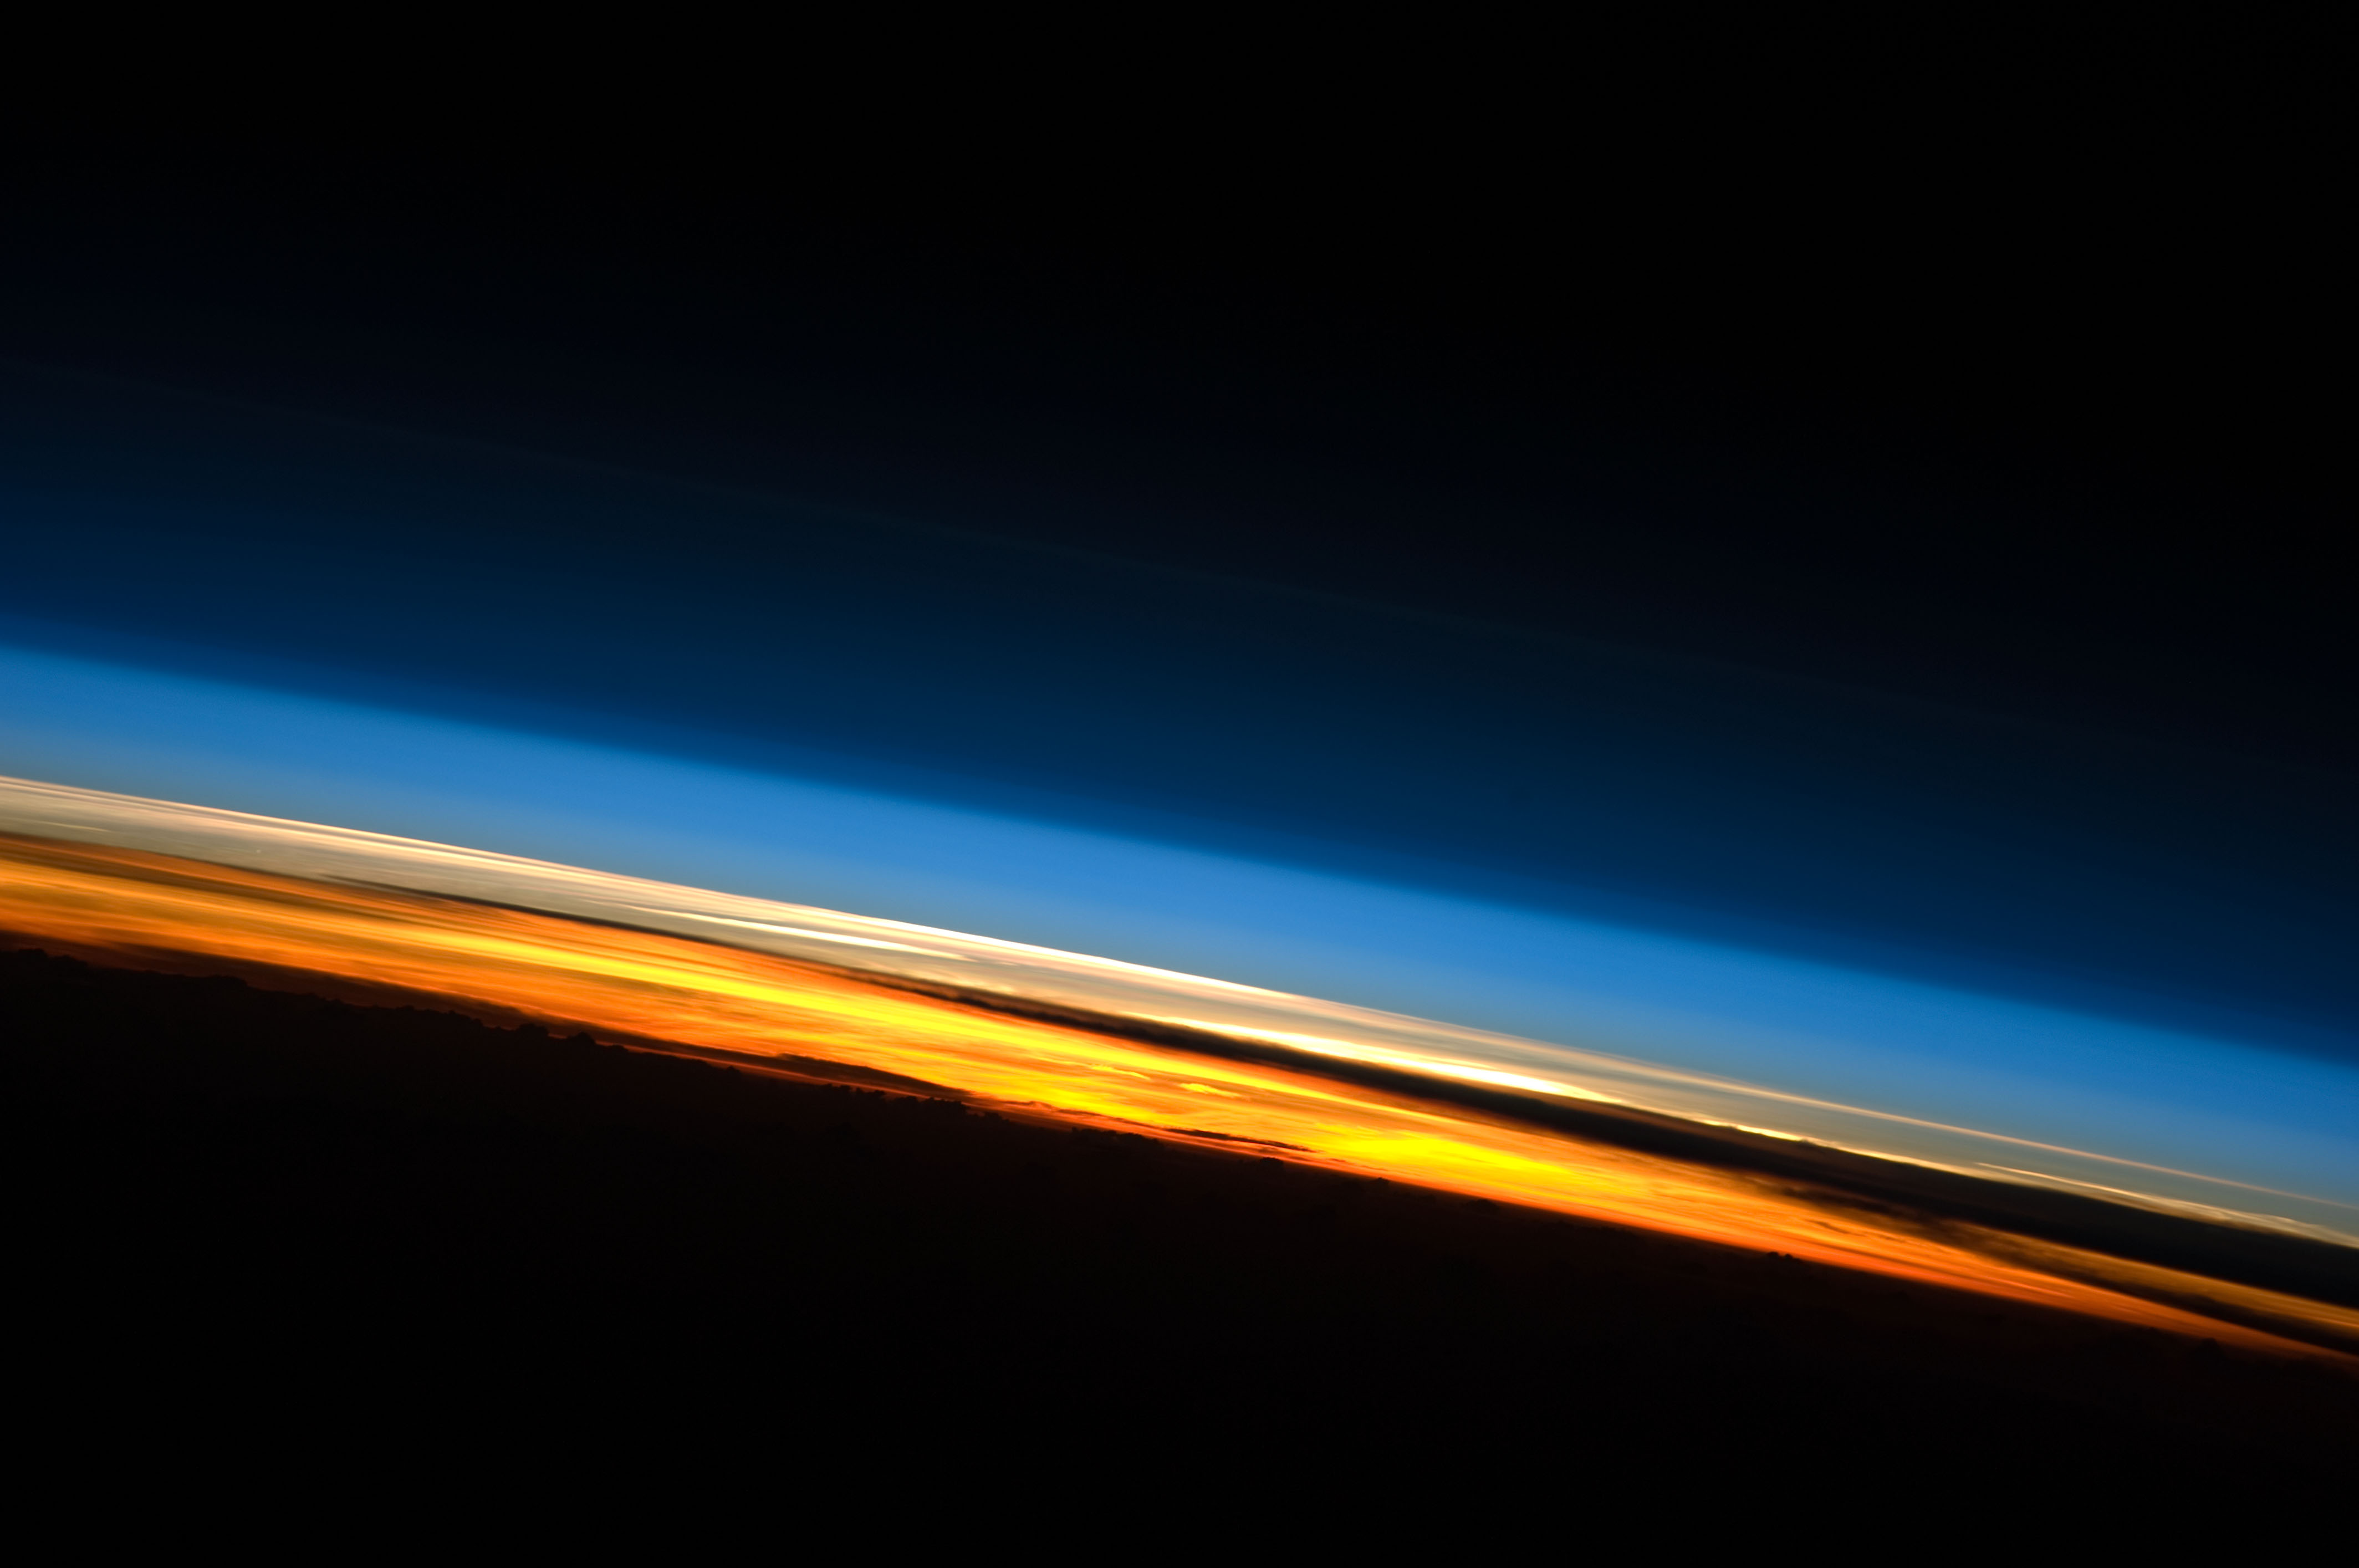 https://i1.wp.com/upload.wikimedia.org/wikipedia/commons/1/13/Sunset_from_the_ISS.JPG